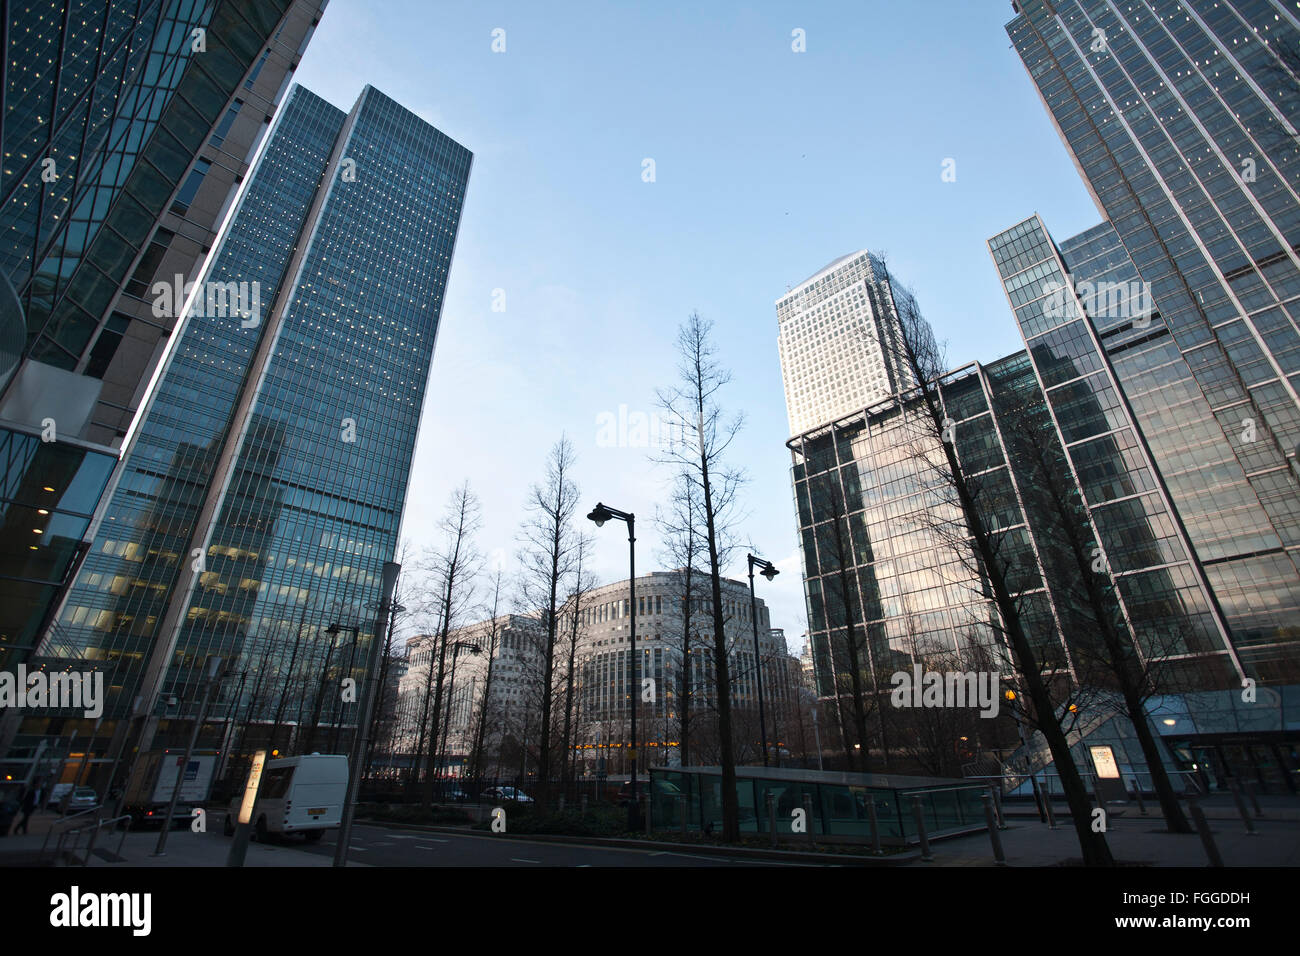 Financial institutions dwarfing the skyline at Canary Wharf, East London, England, United Kingdom - Stock Image